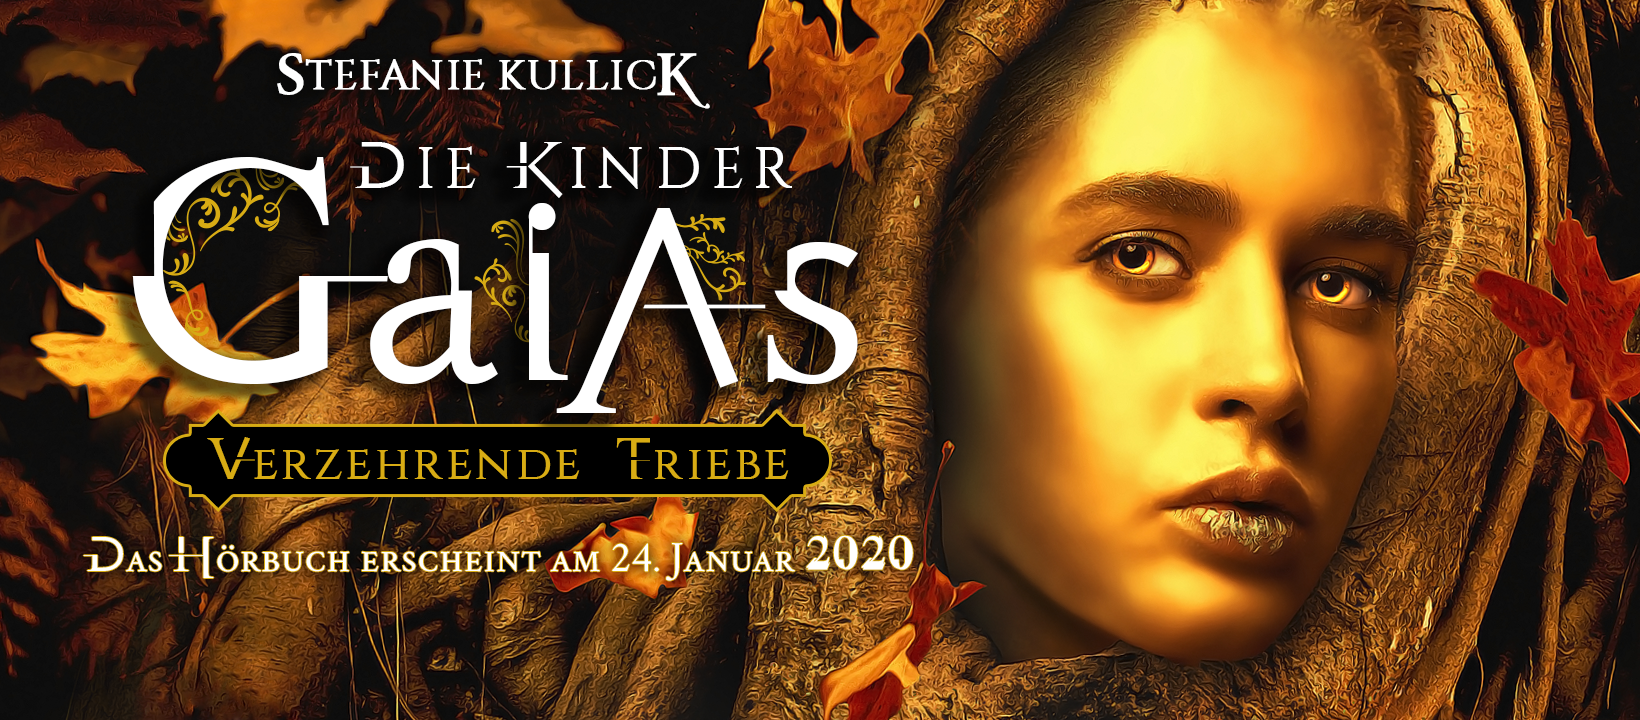 Die-Kinder-Gaias-book-3-FB-audiobook2020